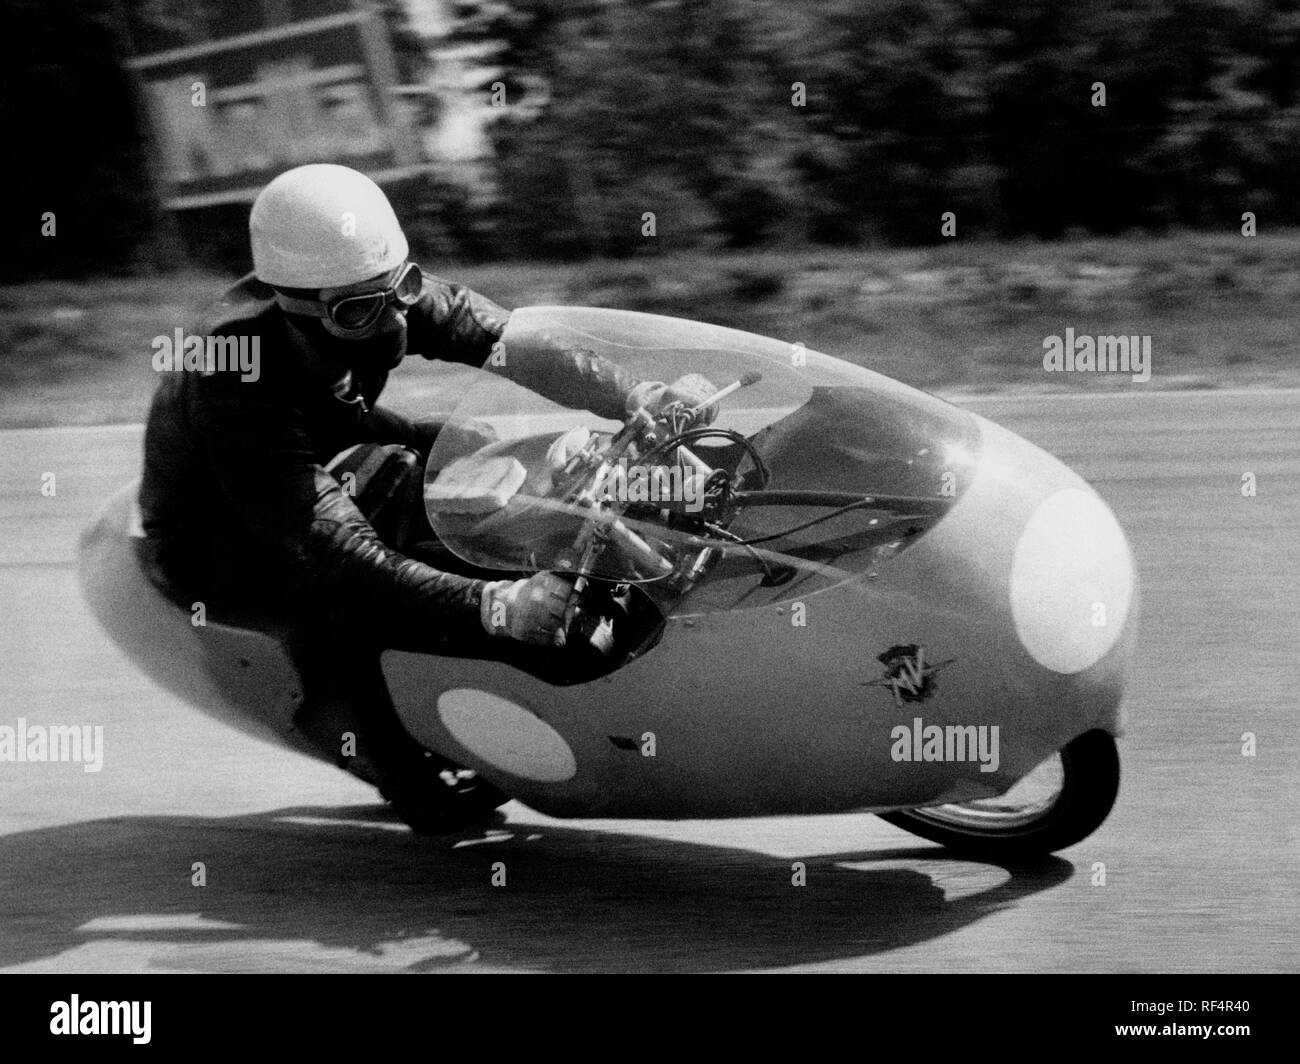 carlo ubbiali, mv agusta 125 cc, 1957 Stock Photo